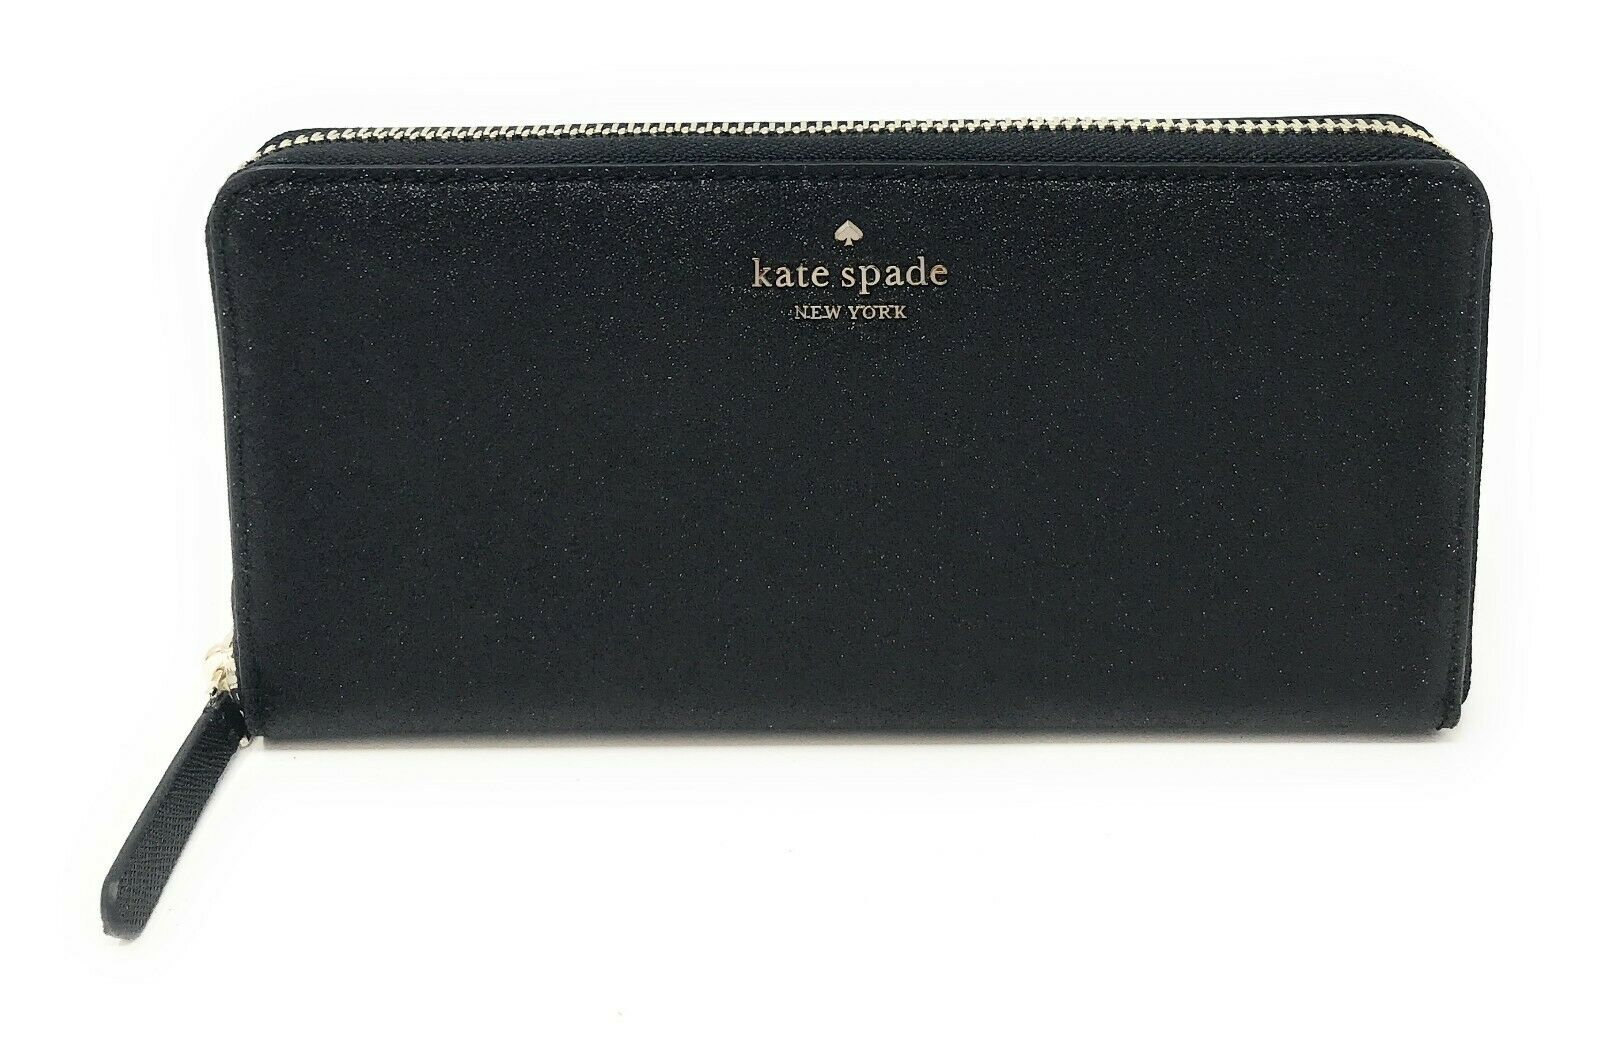 Kate Spade Joeley Large Continental Glitter Wallet Zip Around WLRU5757 $189